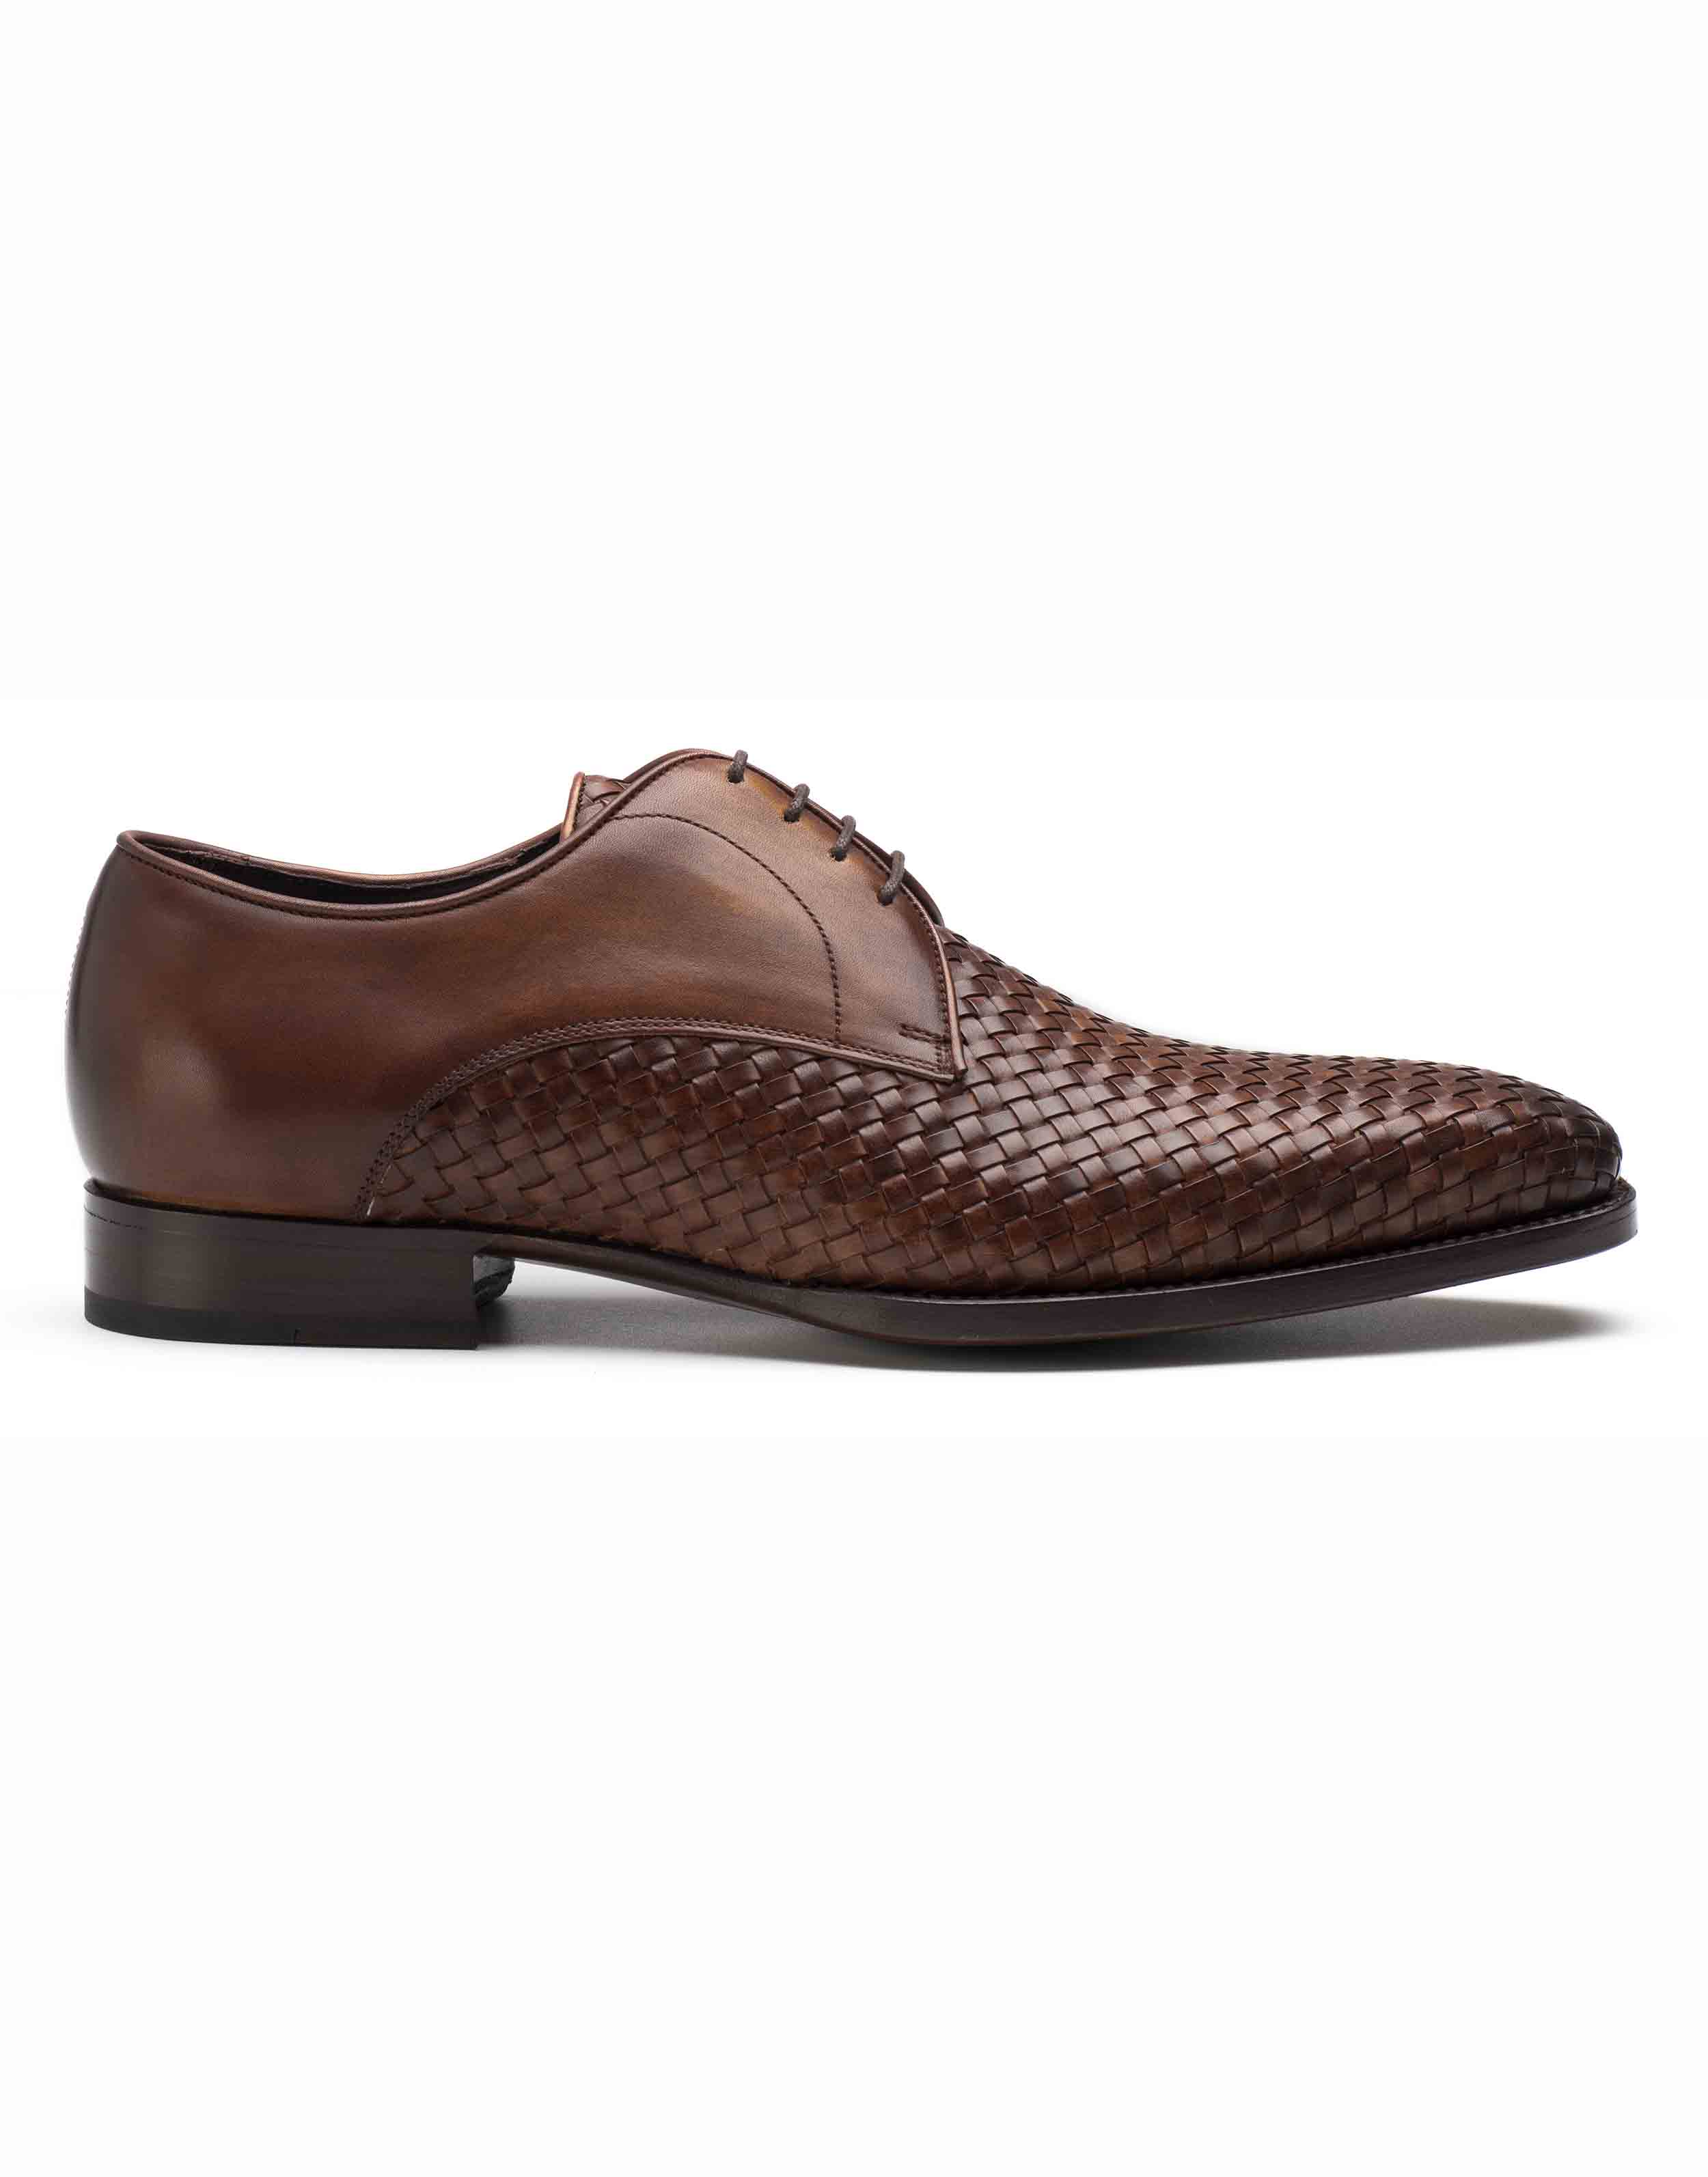 WOVEN LEATHER BROWN DERBY SHOE1